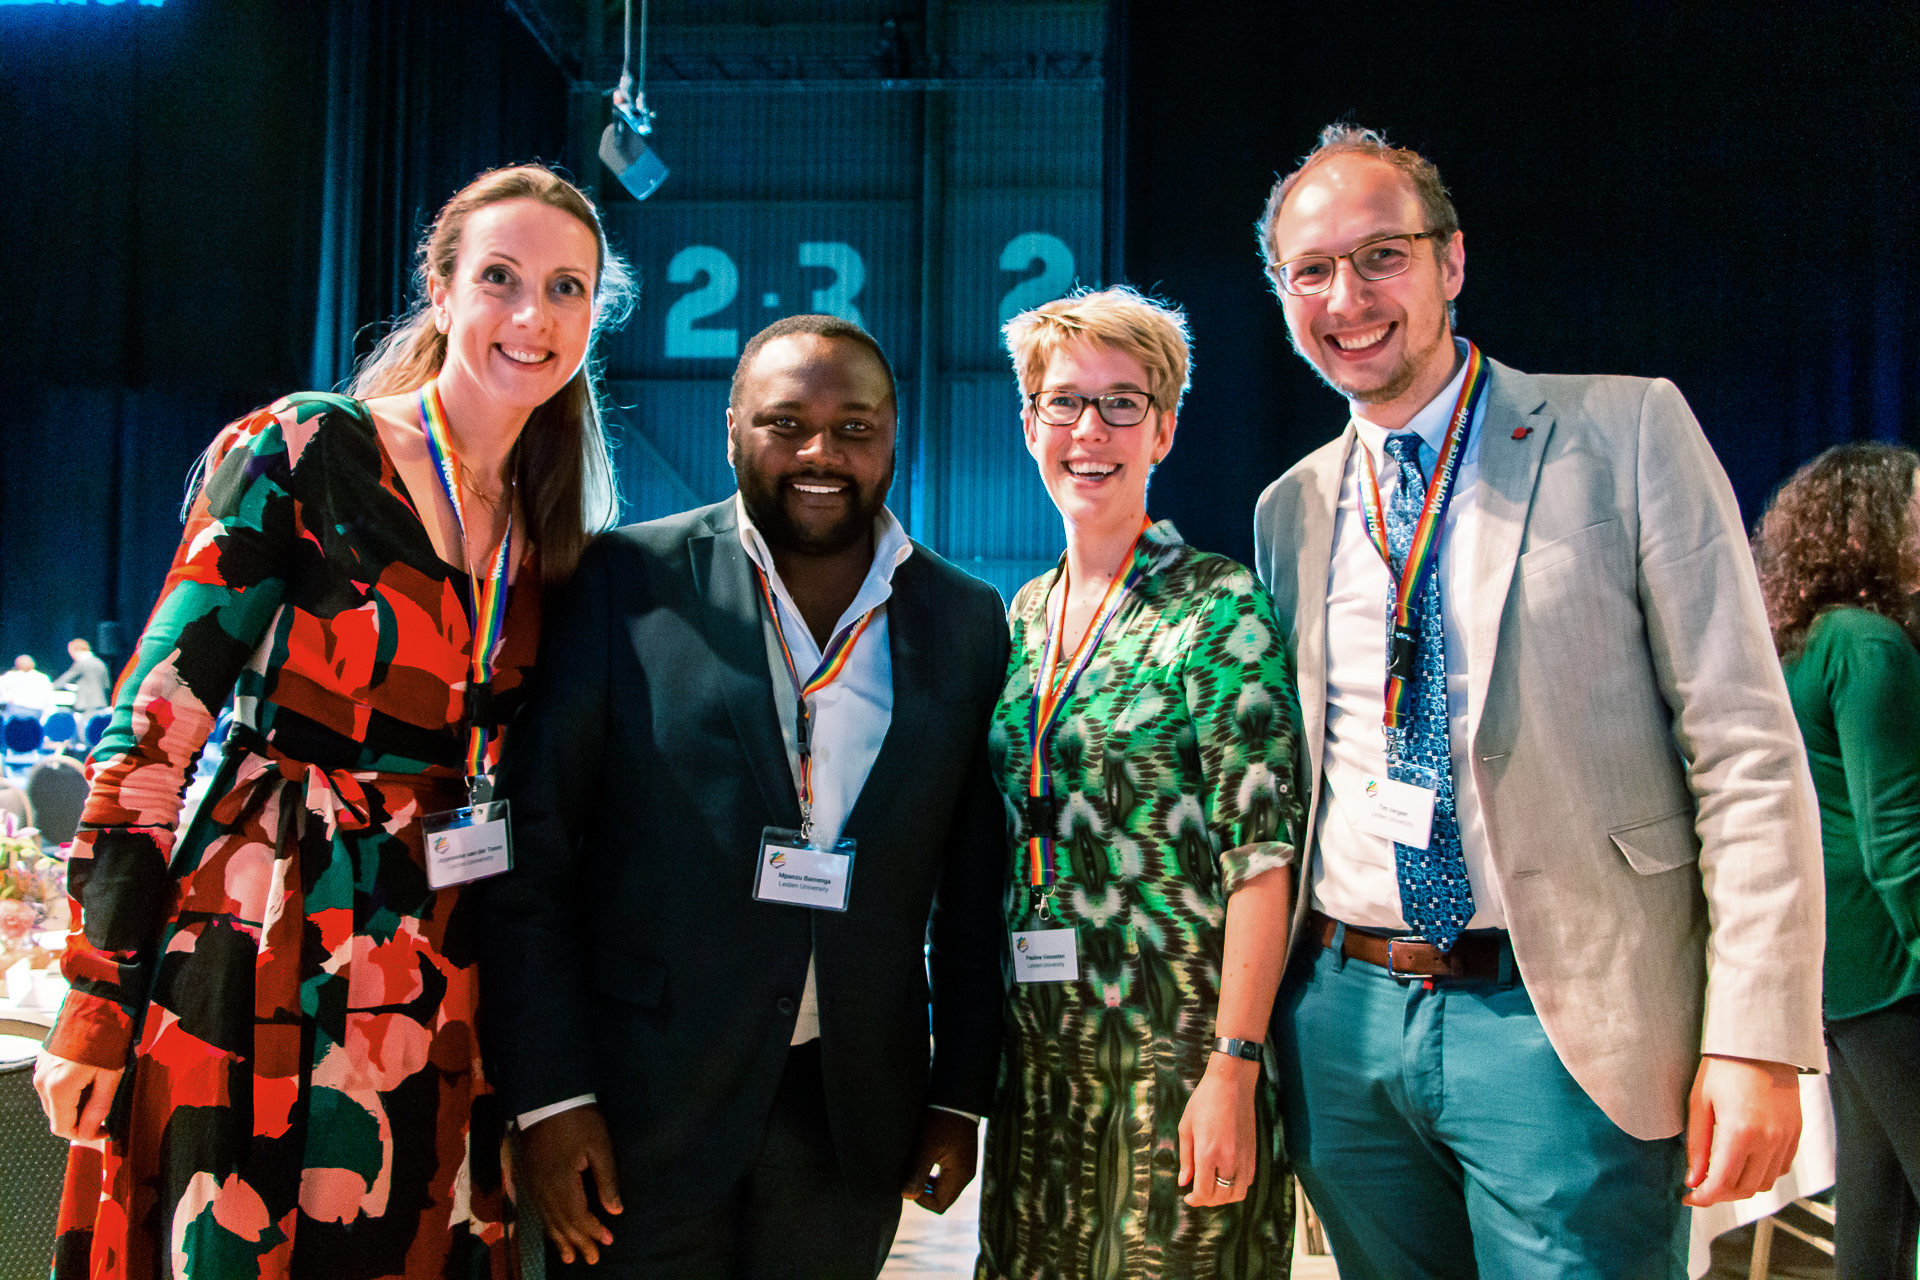 Leiden University was well represented at the conference (From left to right: Jojanneke, Mpanzu, Pauline and Tim)